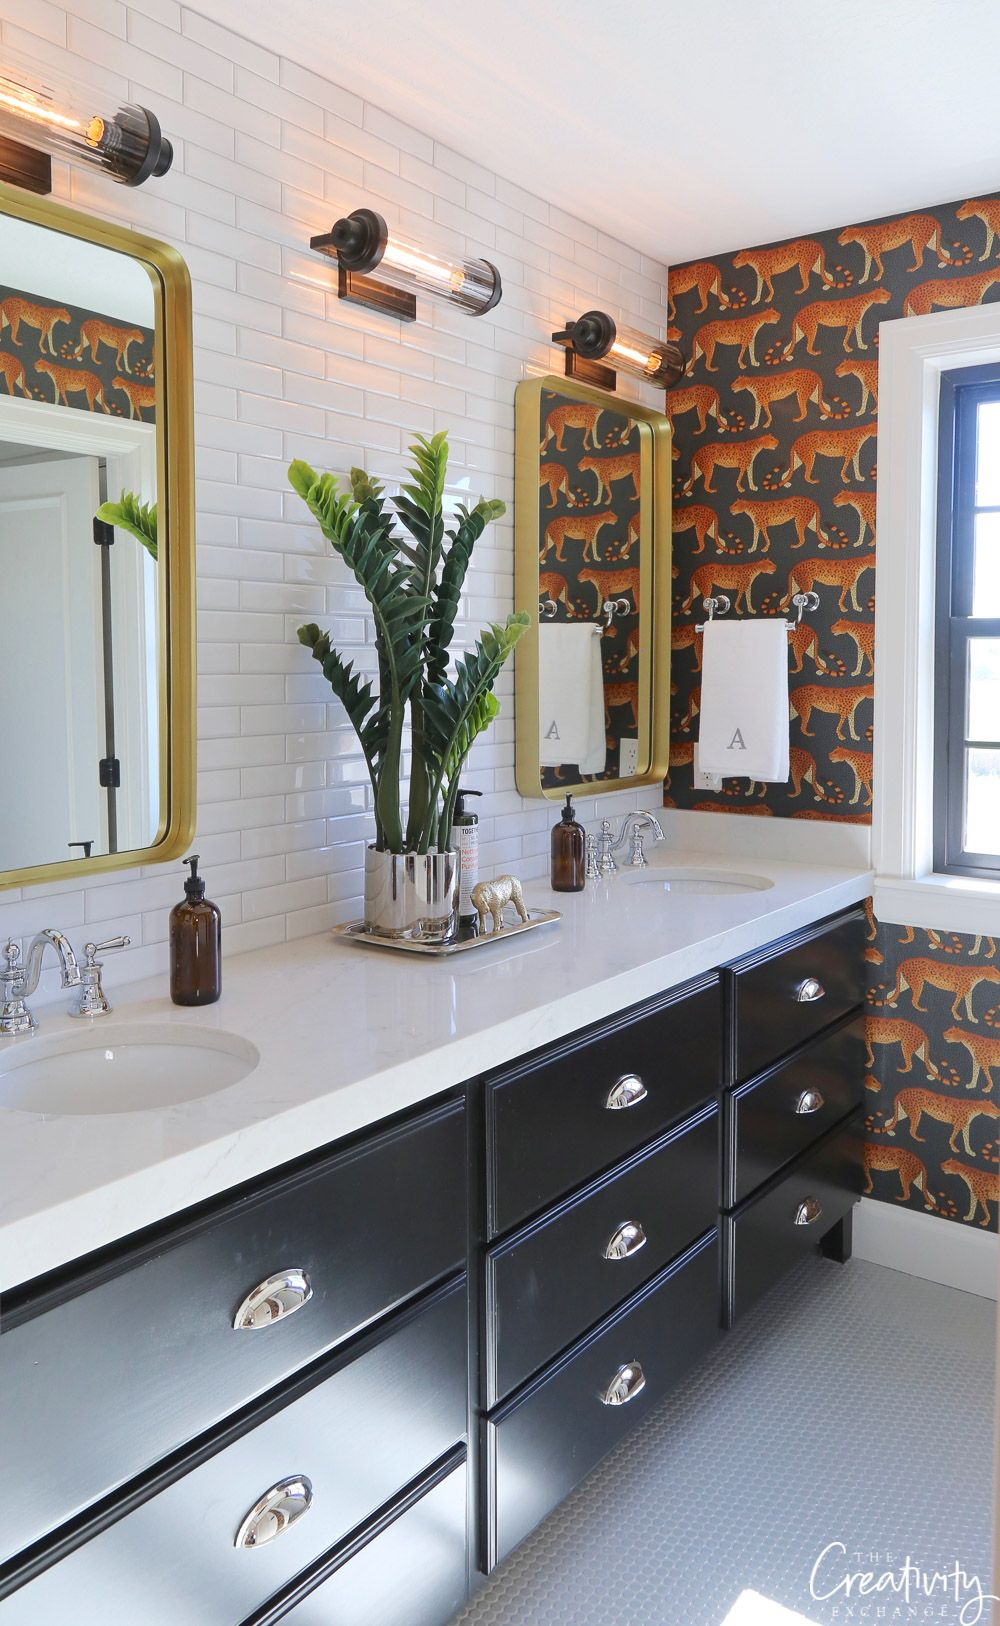 2018 Utah Valley Parade Of Homes Part 2 Painted Vanity Bathroom Painting Bathroom Cabinets Painting Bathroom